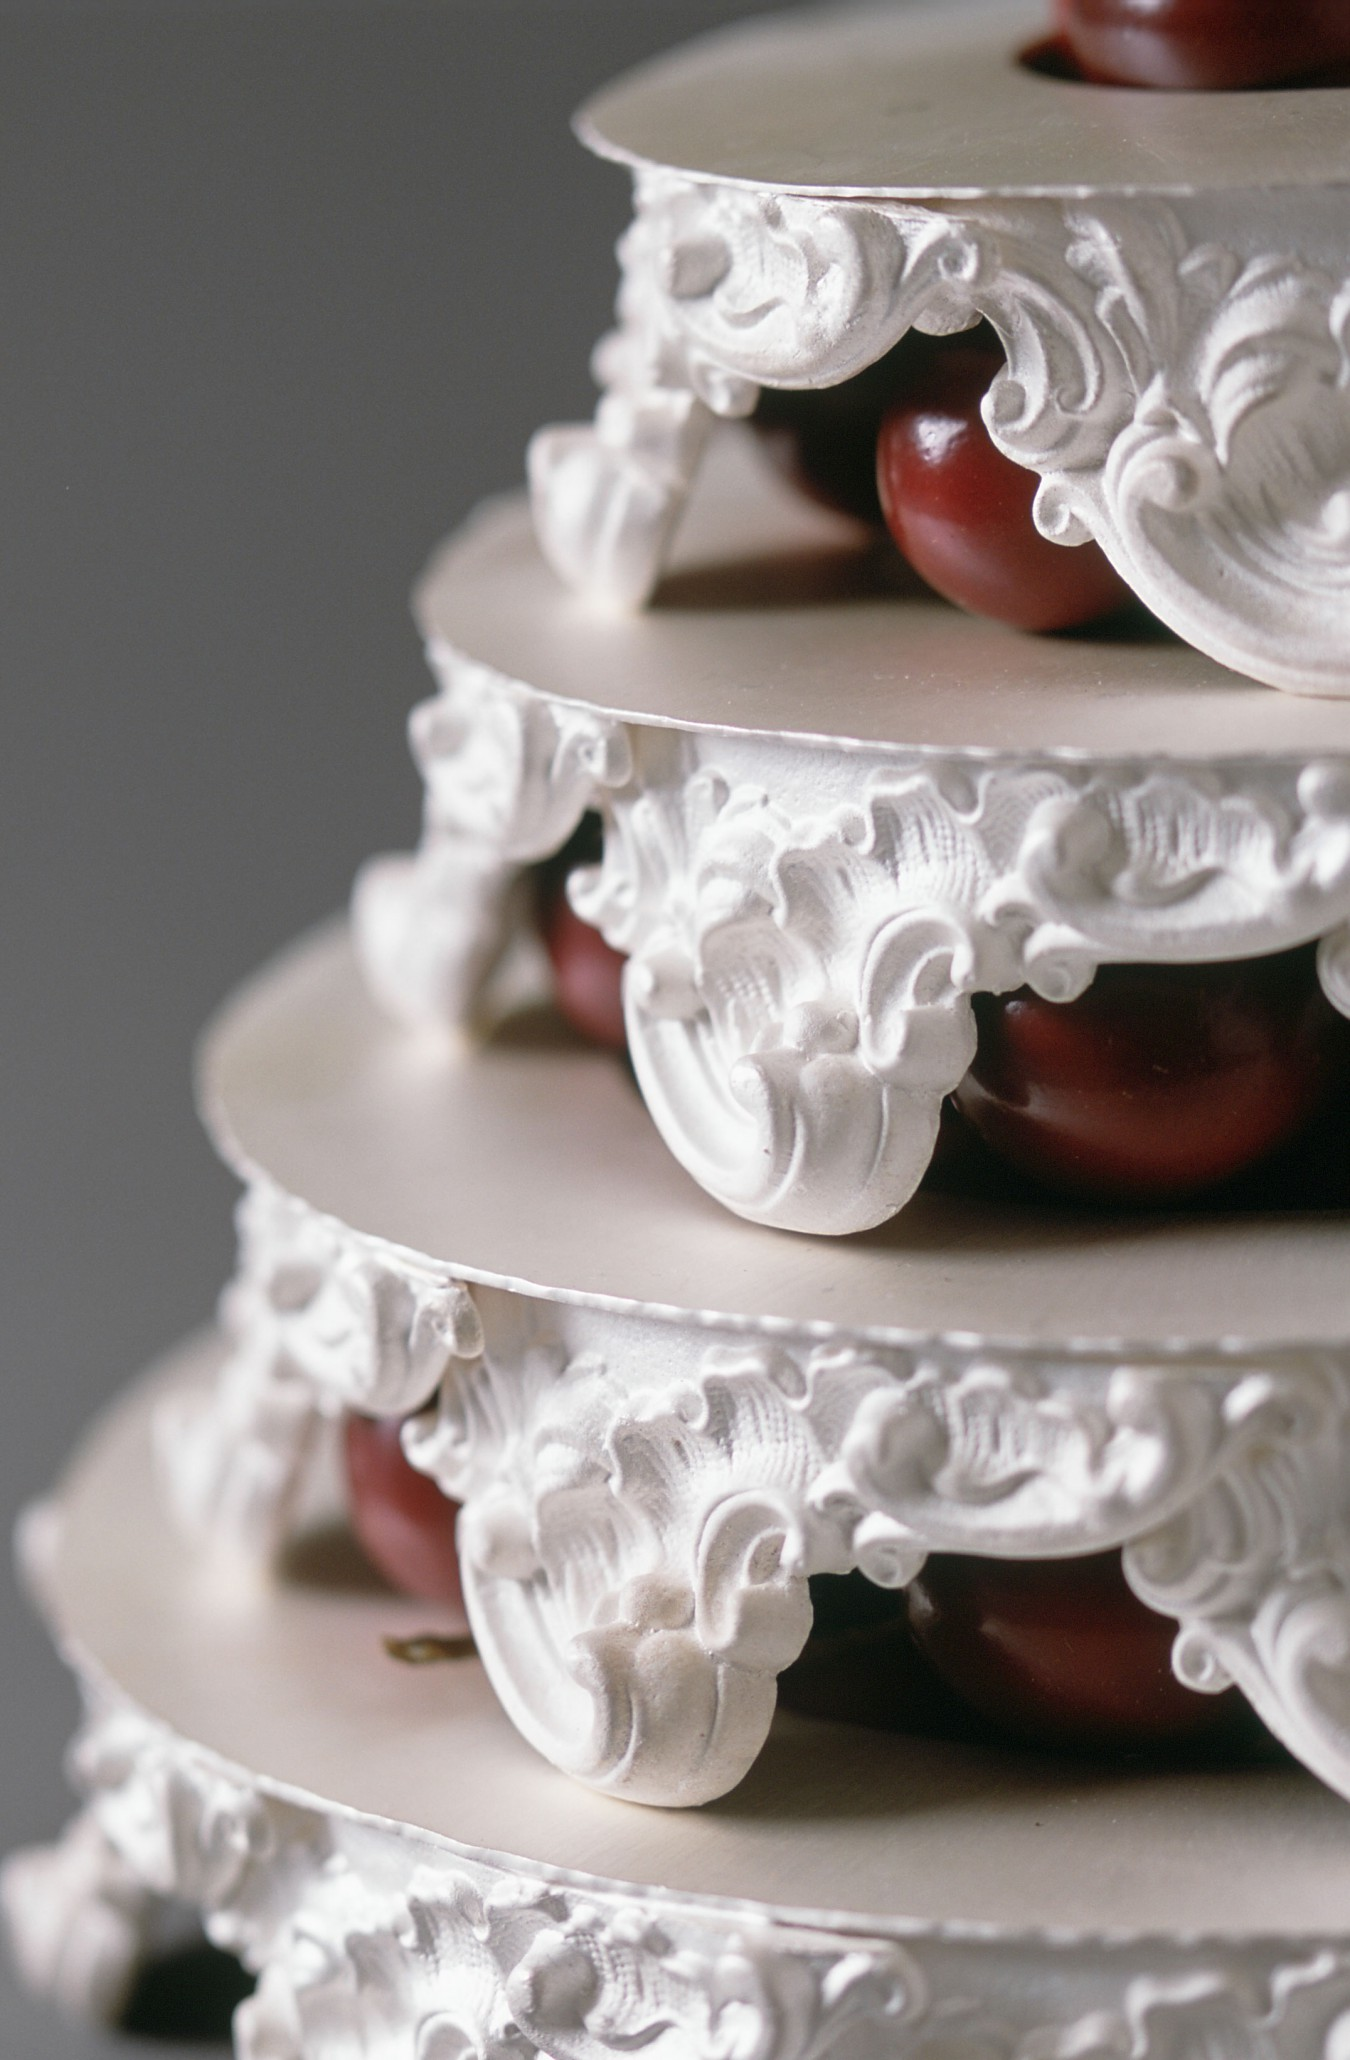 Image of a 4 tiered wedding cake made from cast highly ornate tray legs. The silver is white cooked resembling royal icing